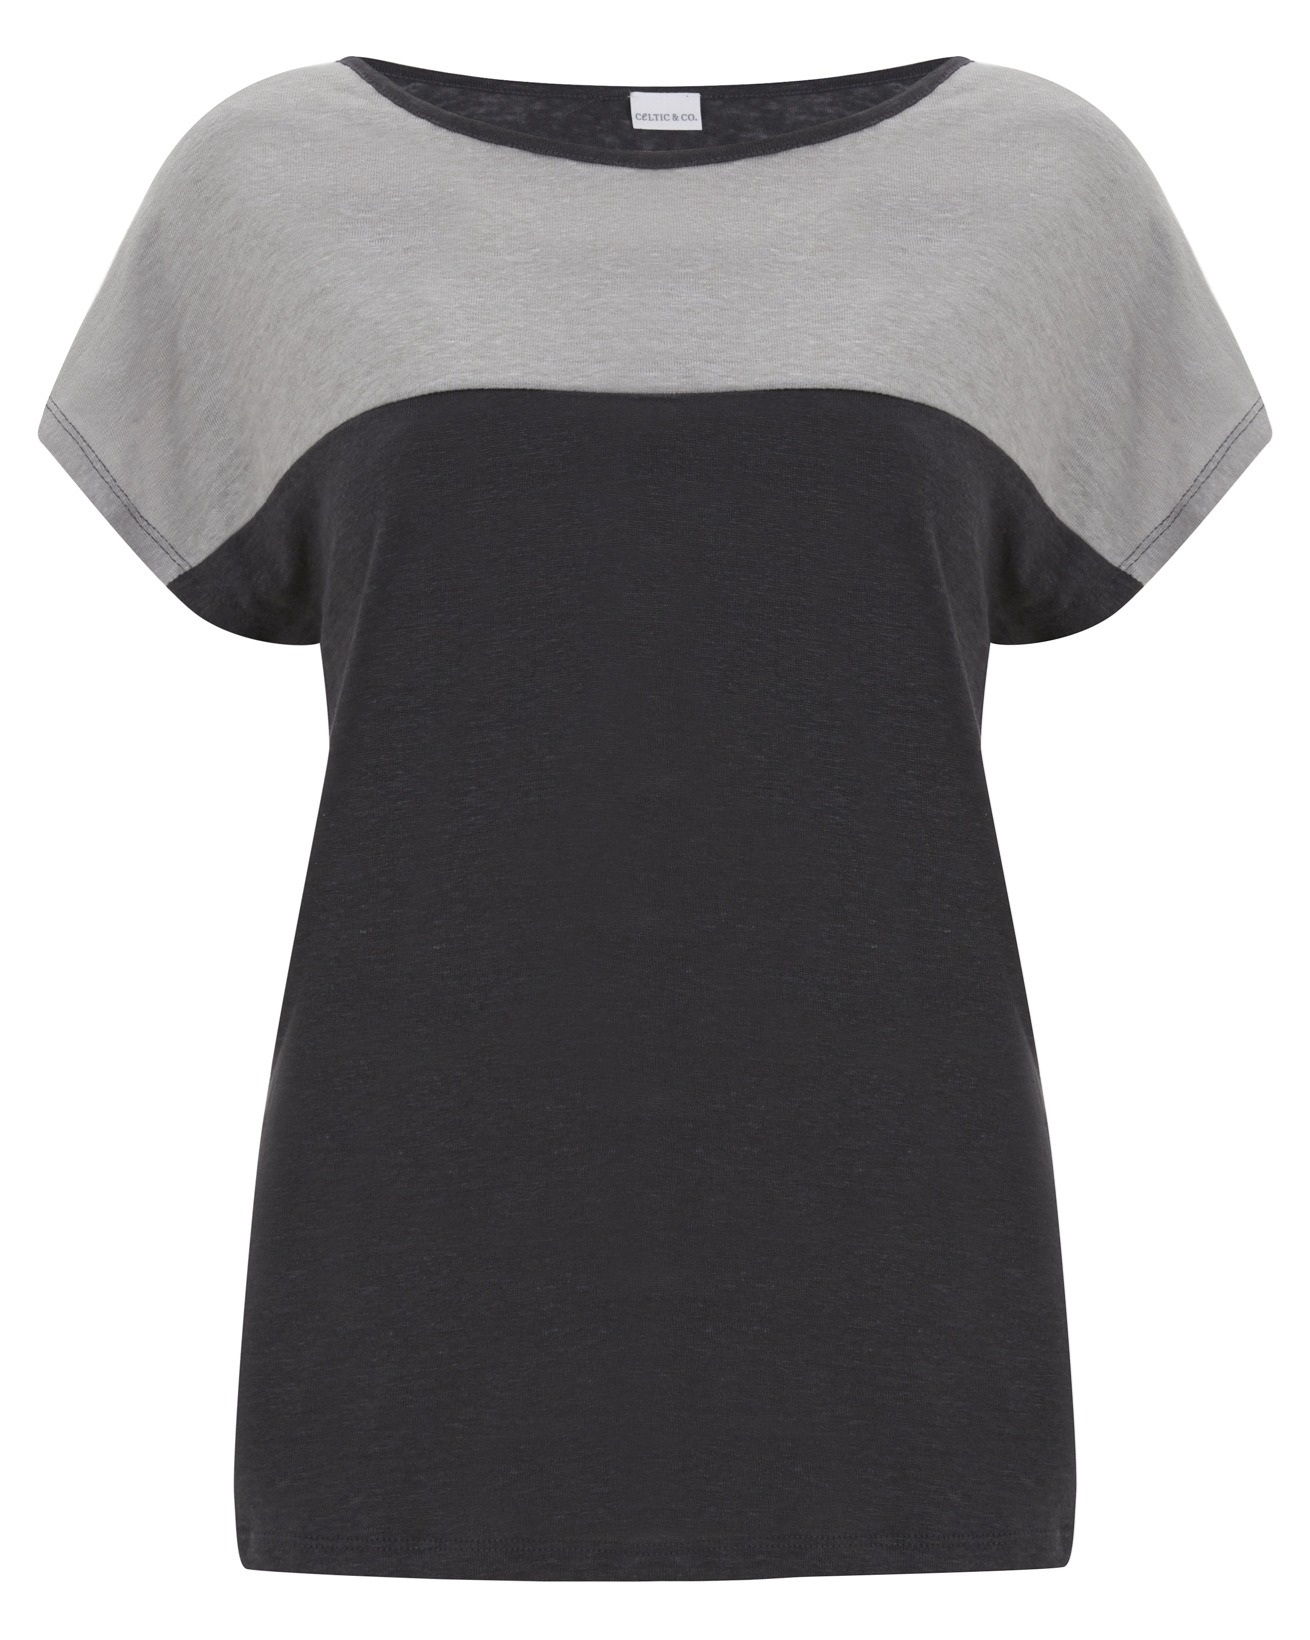 Linen Colourblock Top - Size 10 -  Navy / Grey - 368